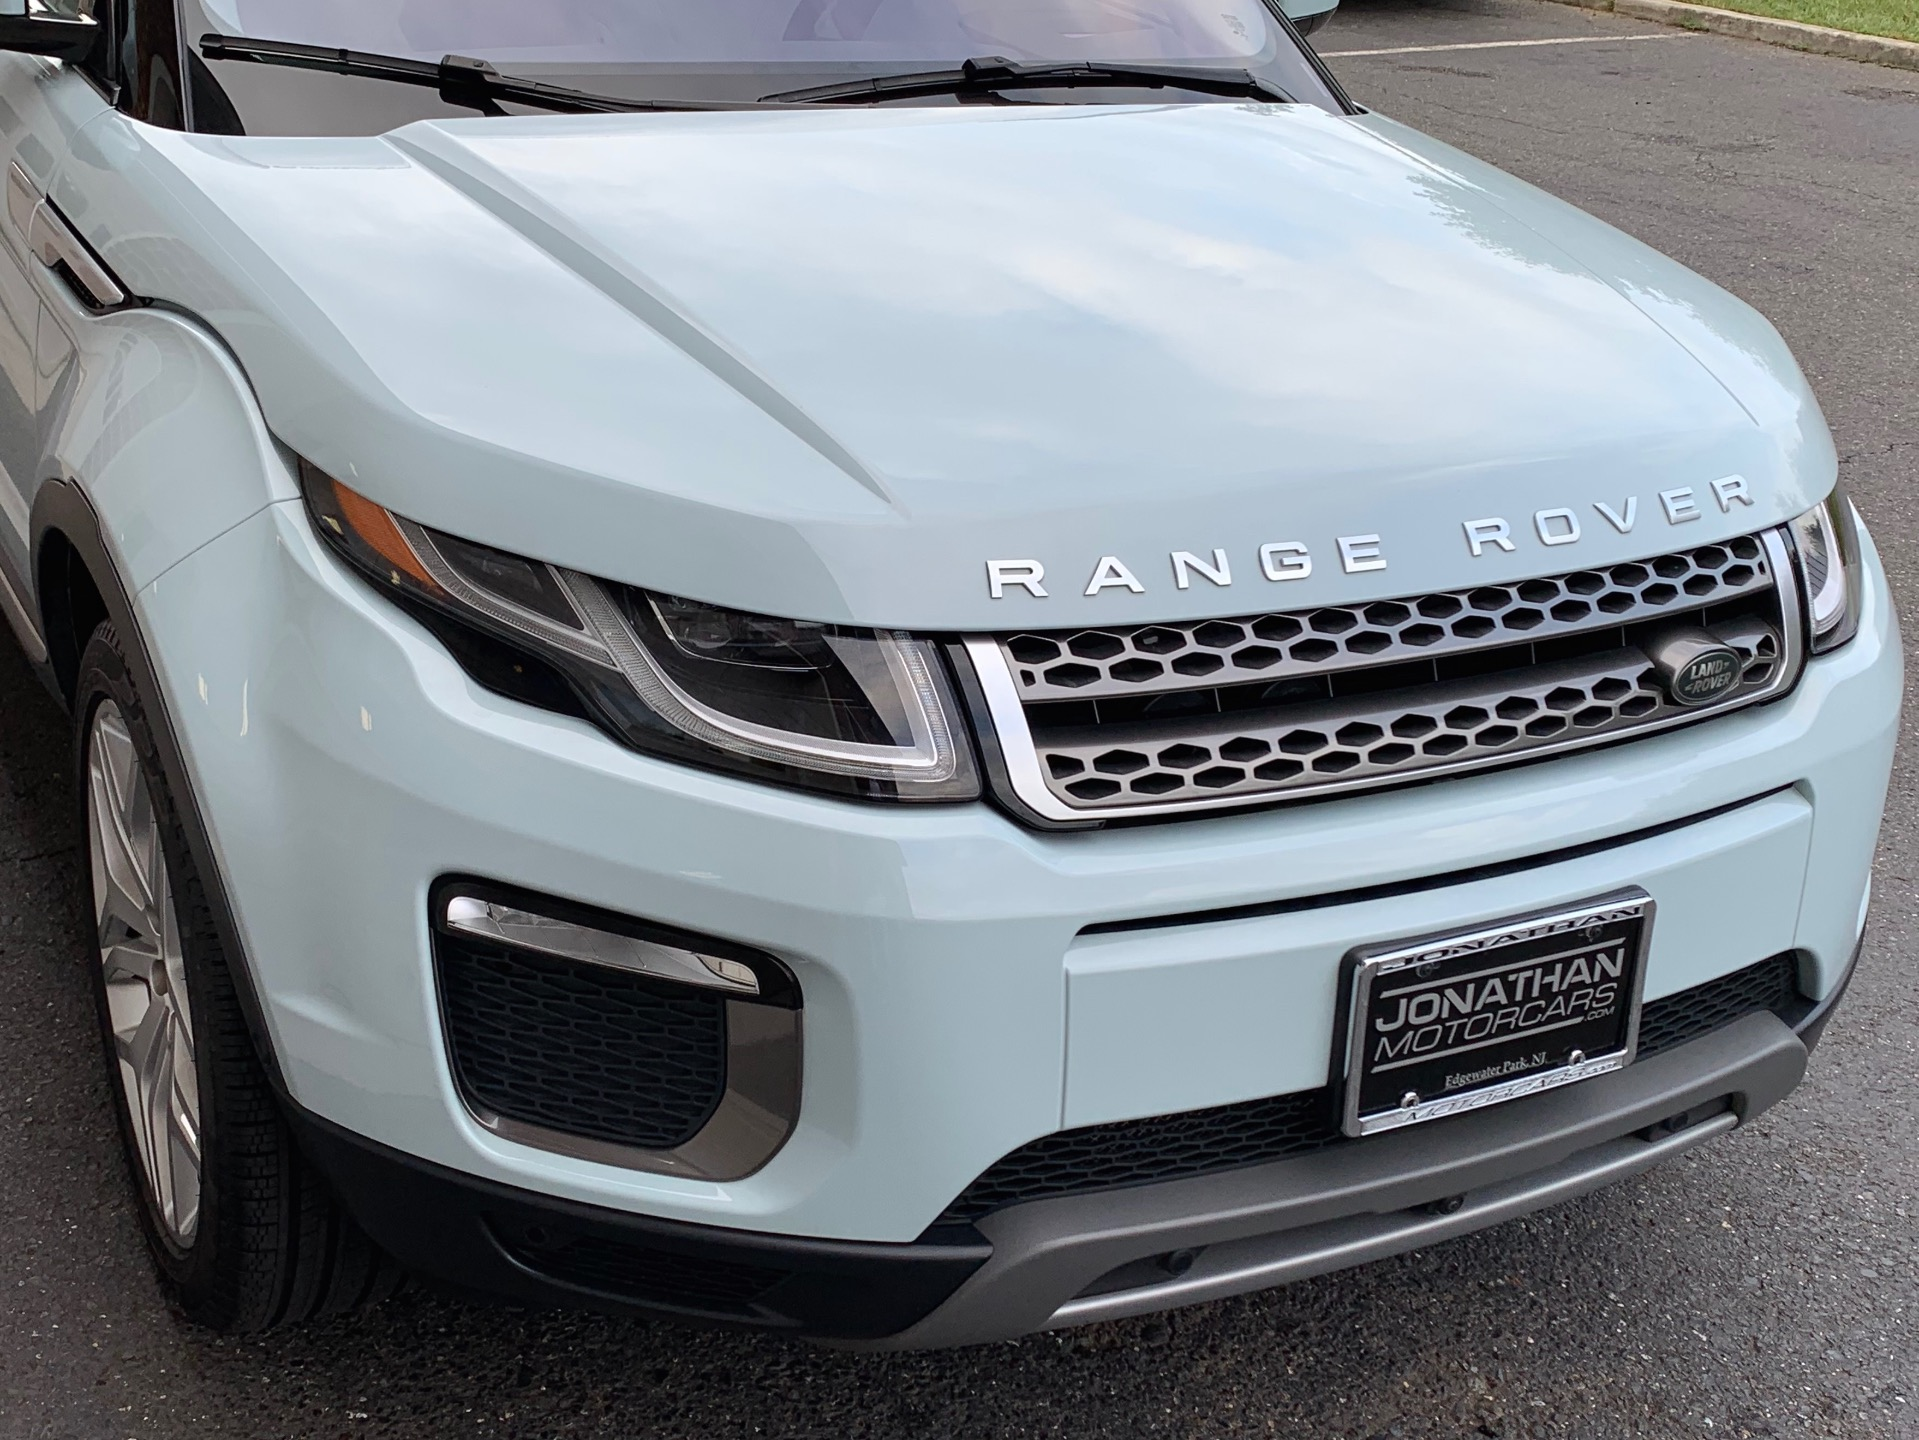 Used-2017-Land-Rover-Range-Rover-Evoque-HSE